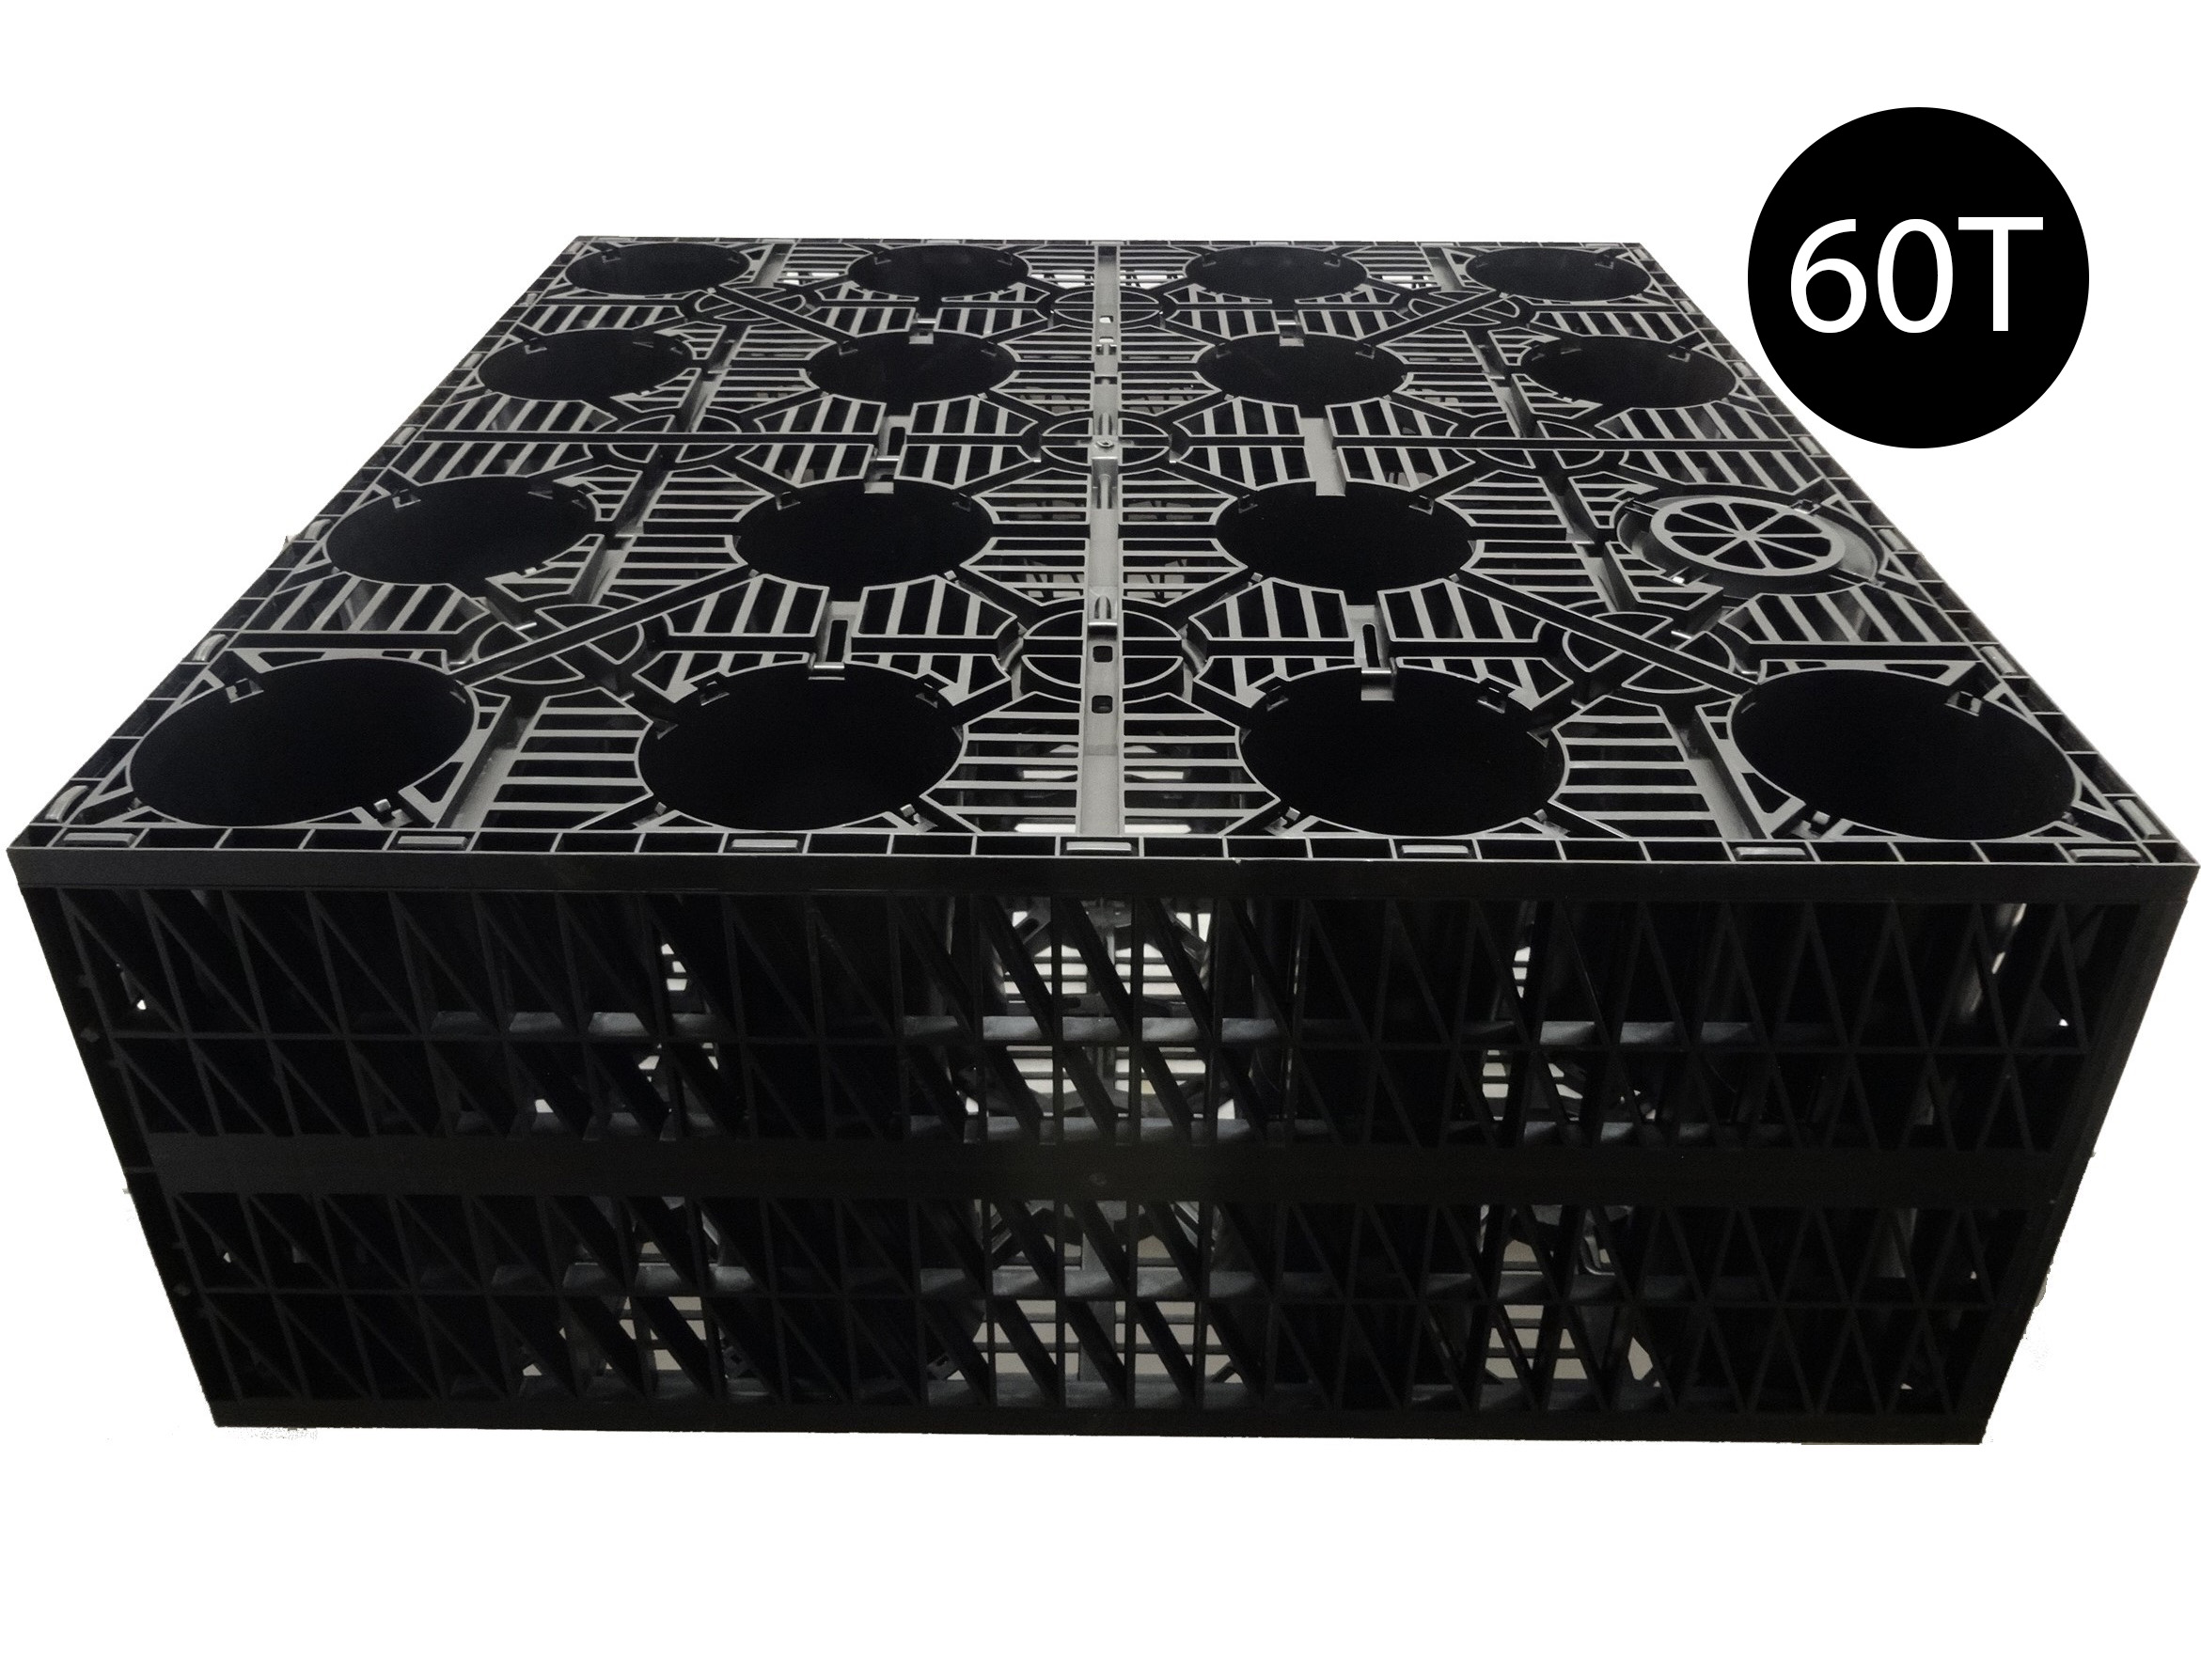 Pennine AquaCrate 450 (Deks Century100) Storm Attenuation Soakaway Crate (60T) - 1000x1000x400mm (0.4m3)